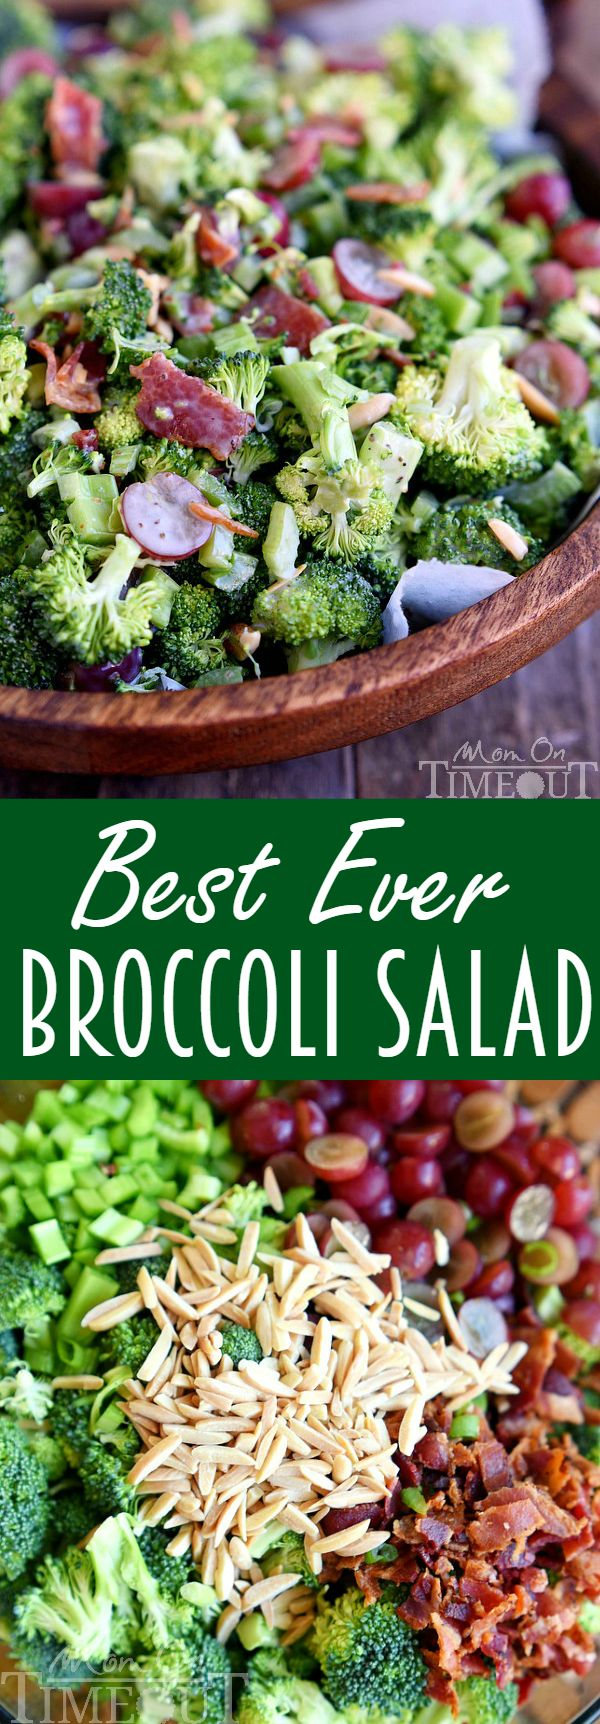 Don't believe me? Just try it! This Best Ever Broccoli Salad recipe is bursting with flavor! Packed full of broccoli, bacon, grapes, almonds and more - every bite is delicious! | Posted By: DebbieNet.com